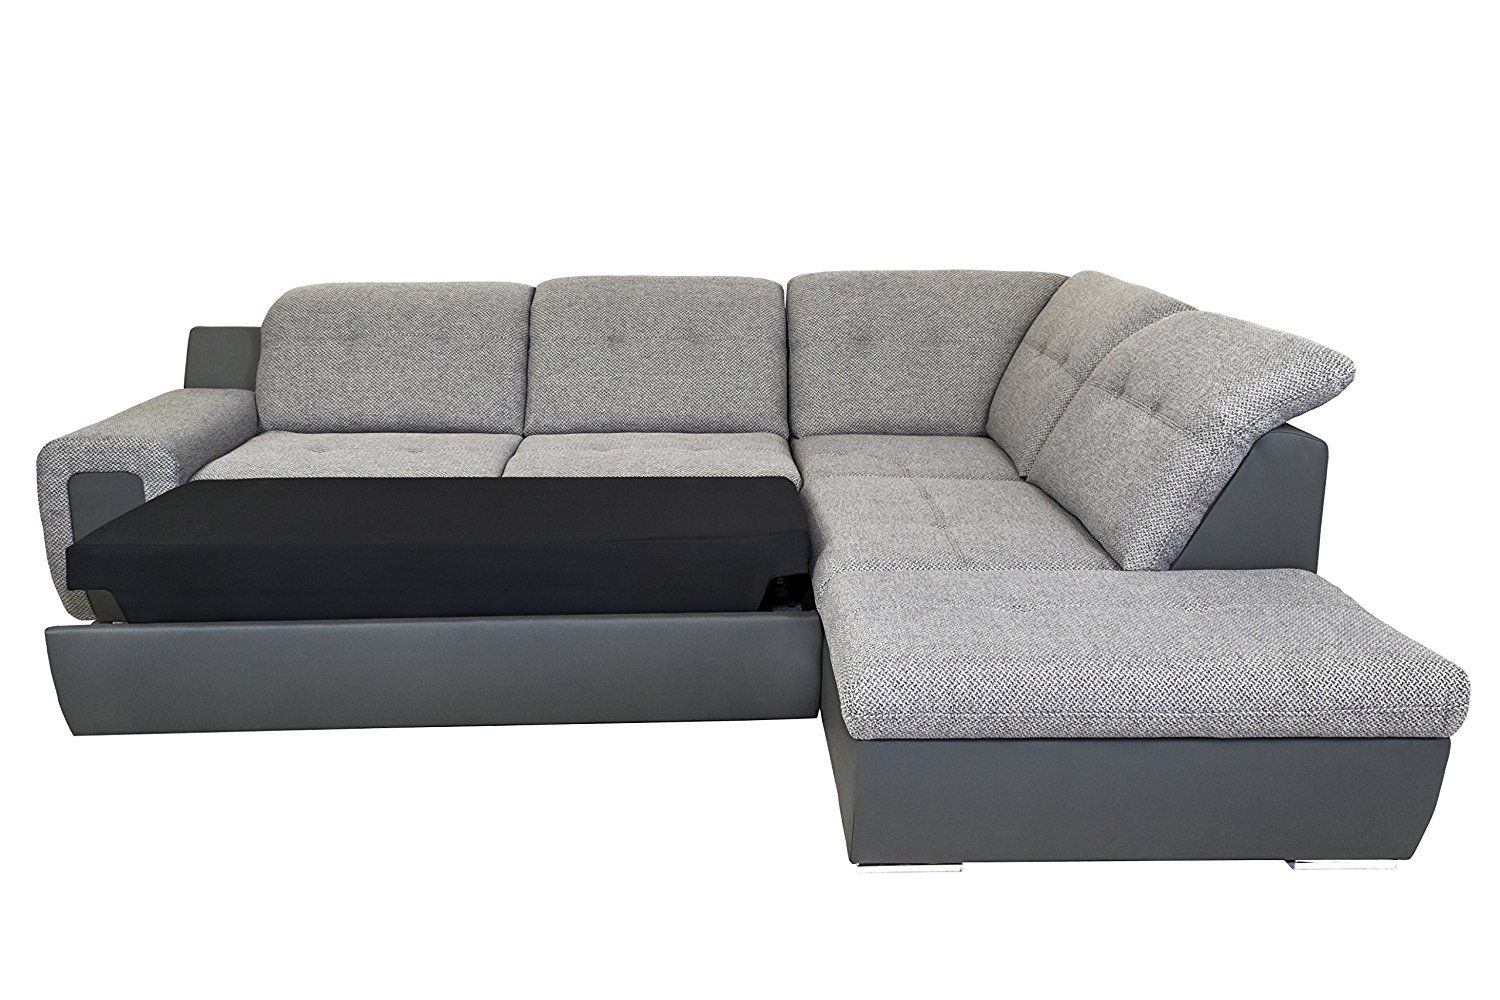 Get Quotations Vvrhomes Galaxy B Right Corner Sectional Sofa Bed